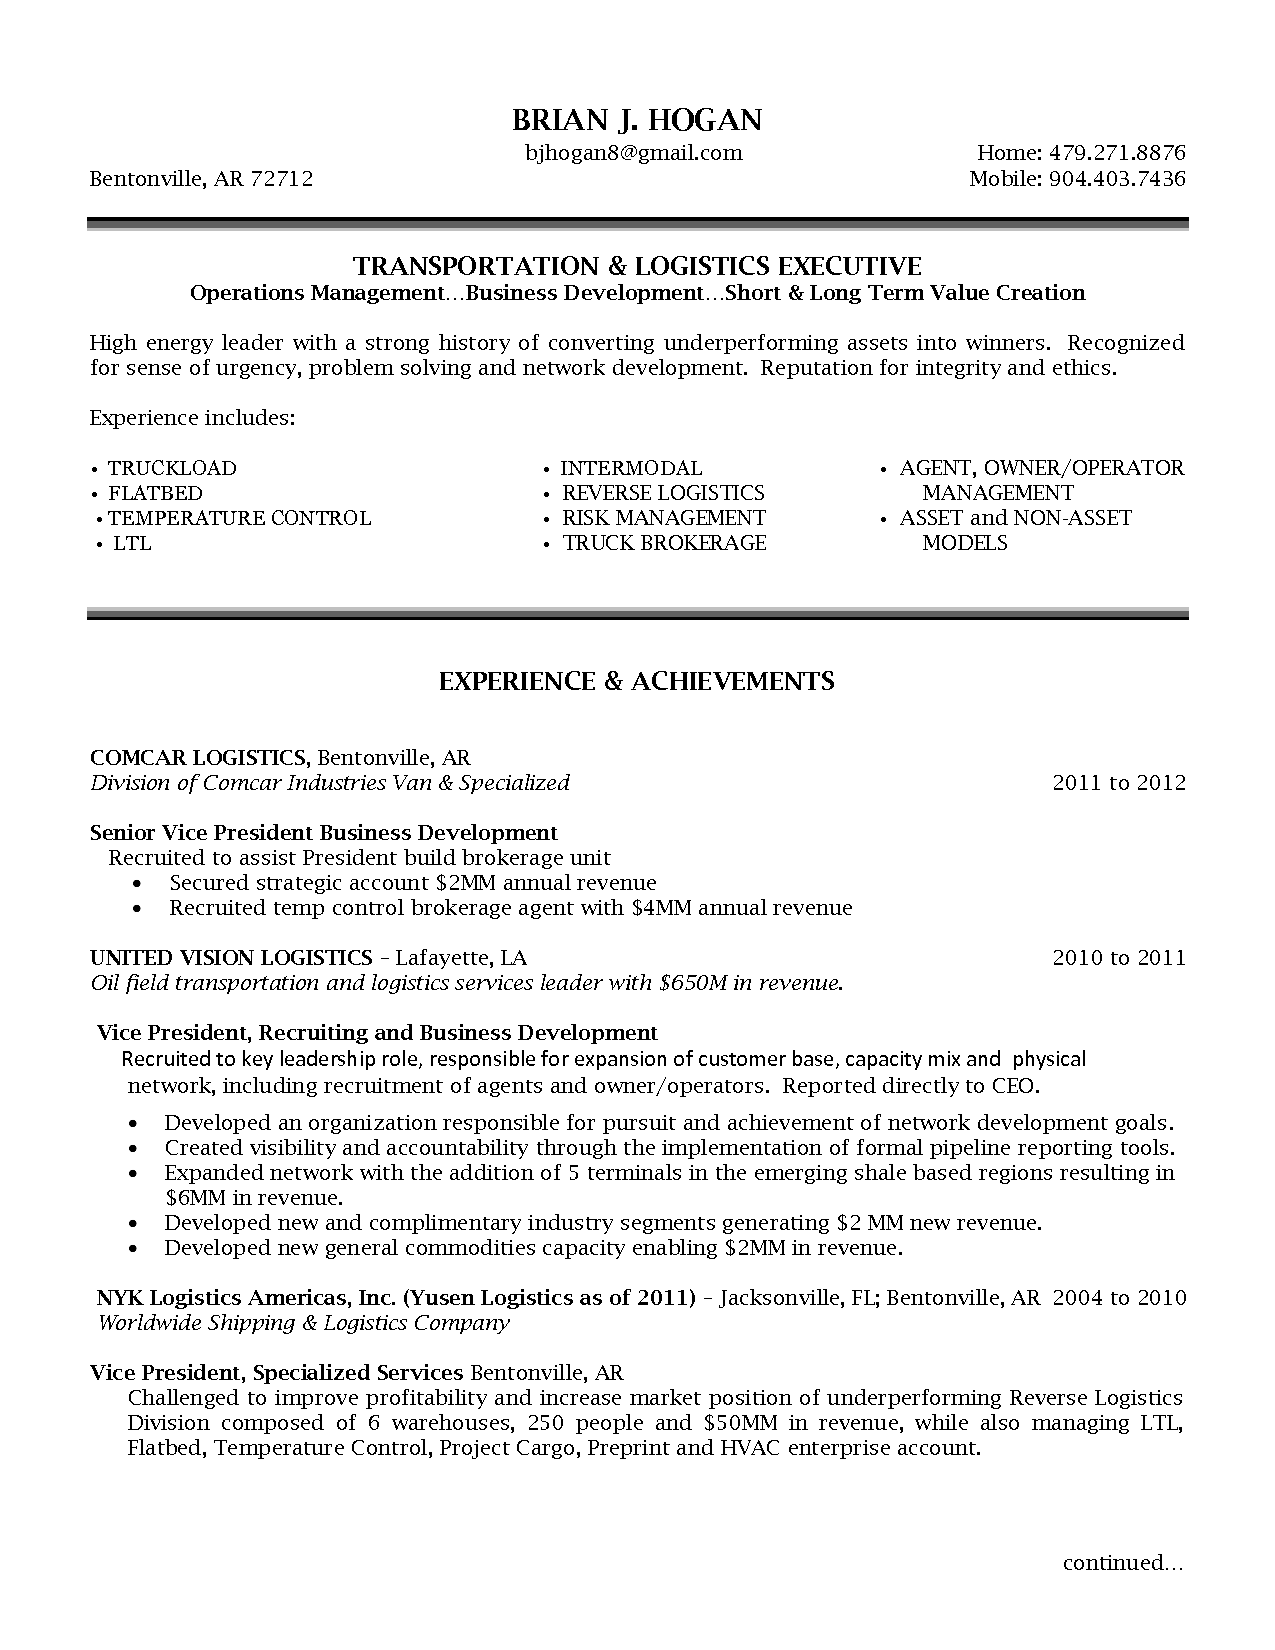 Senior Logistic Management Resume Vp Director Operations